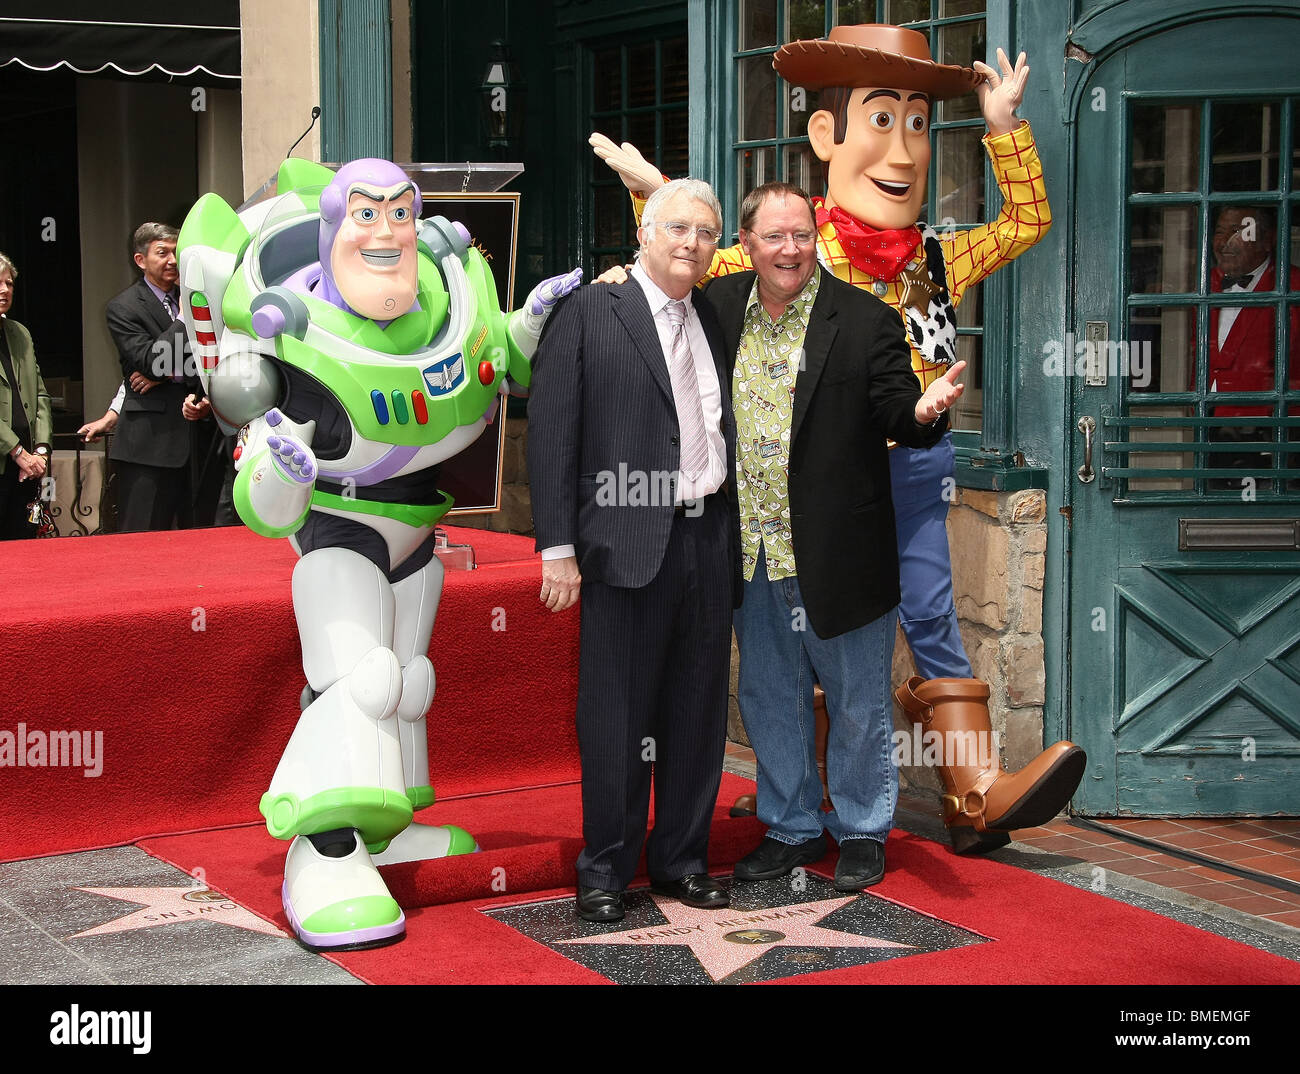 BUZZ LIGHTYEAR RANDY NEWMAN JOHN LASSETER WOODY RANDY NEWMAN HONORED WITH A STAR ON THE HOLLYWOOD WALK OF FAME HOLLYWOOD - Stock Image